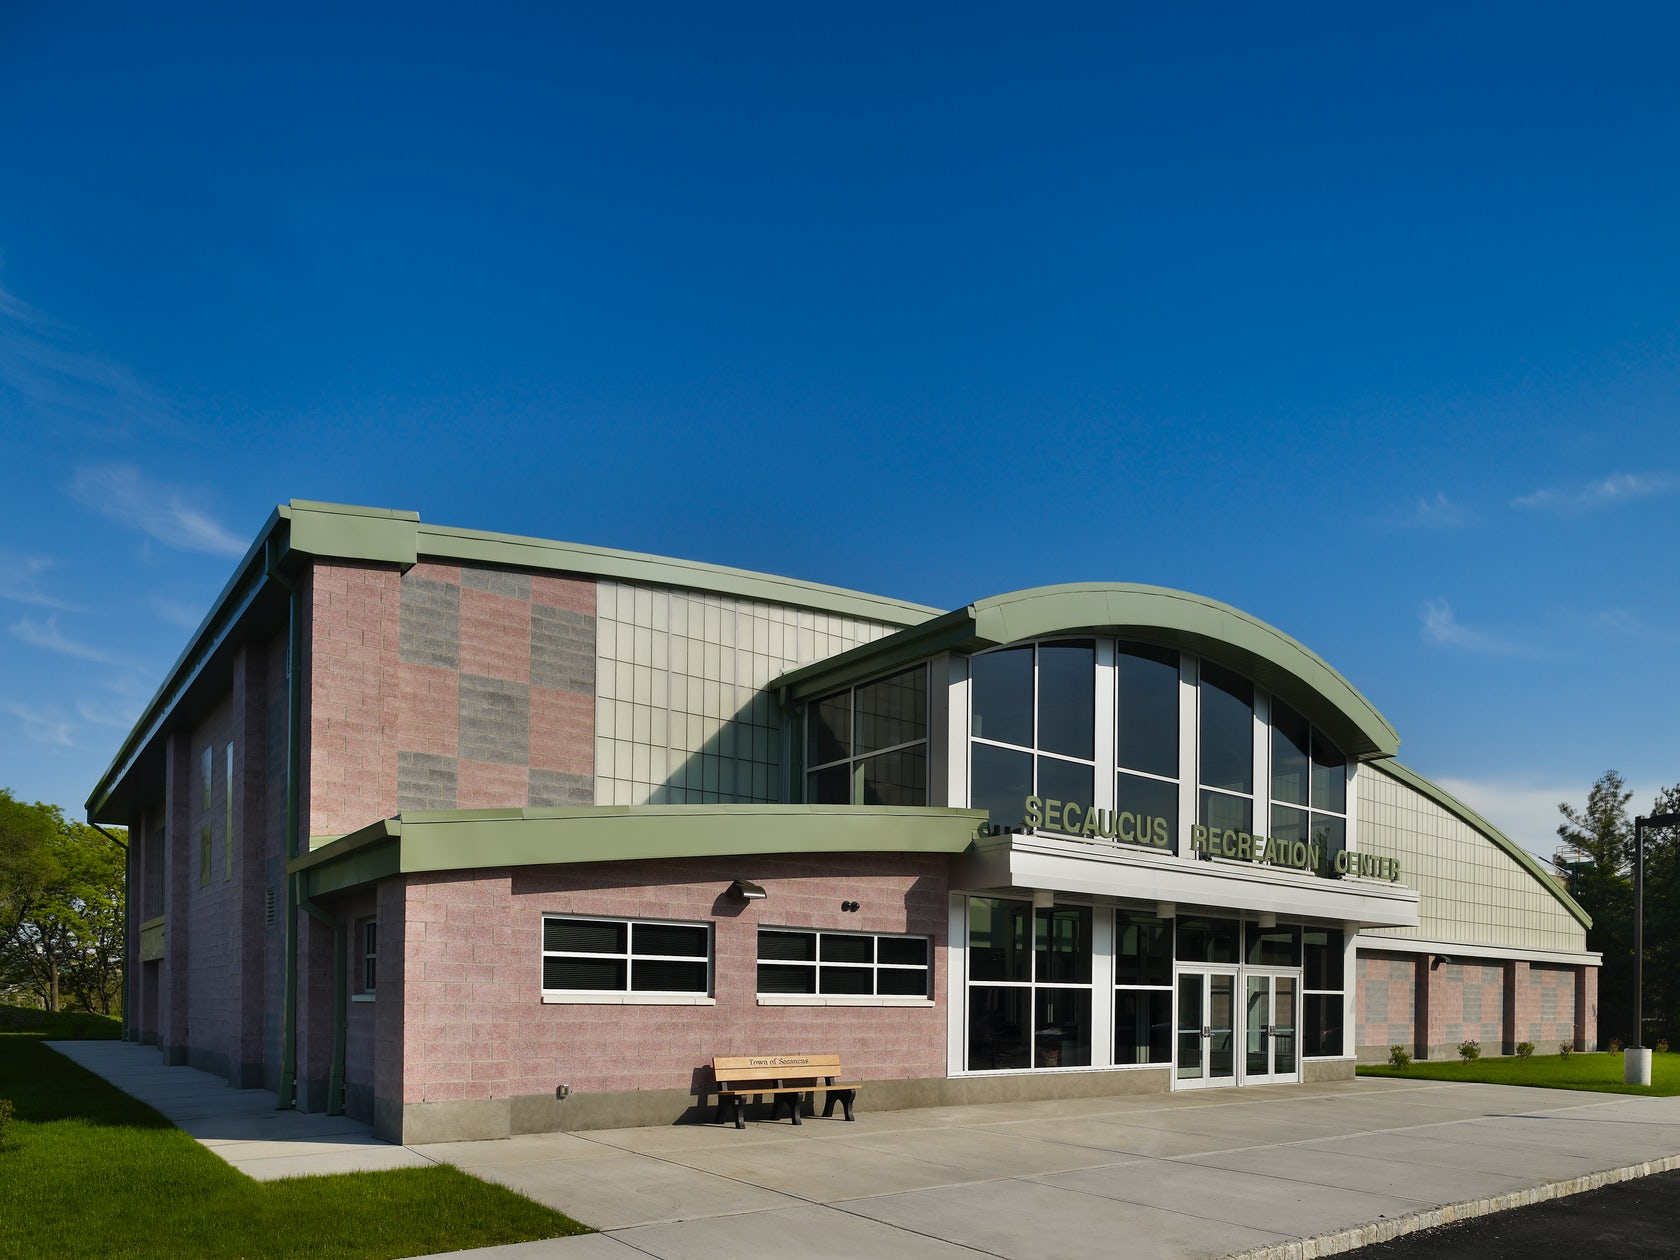 Secaucus recreation center architizer for Community motors mason city